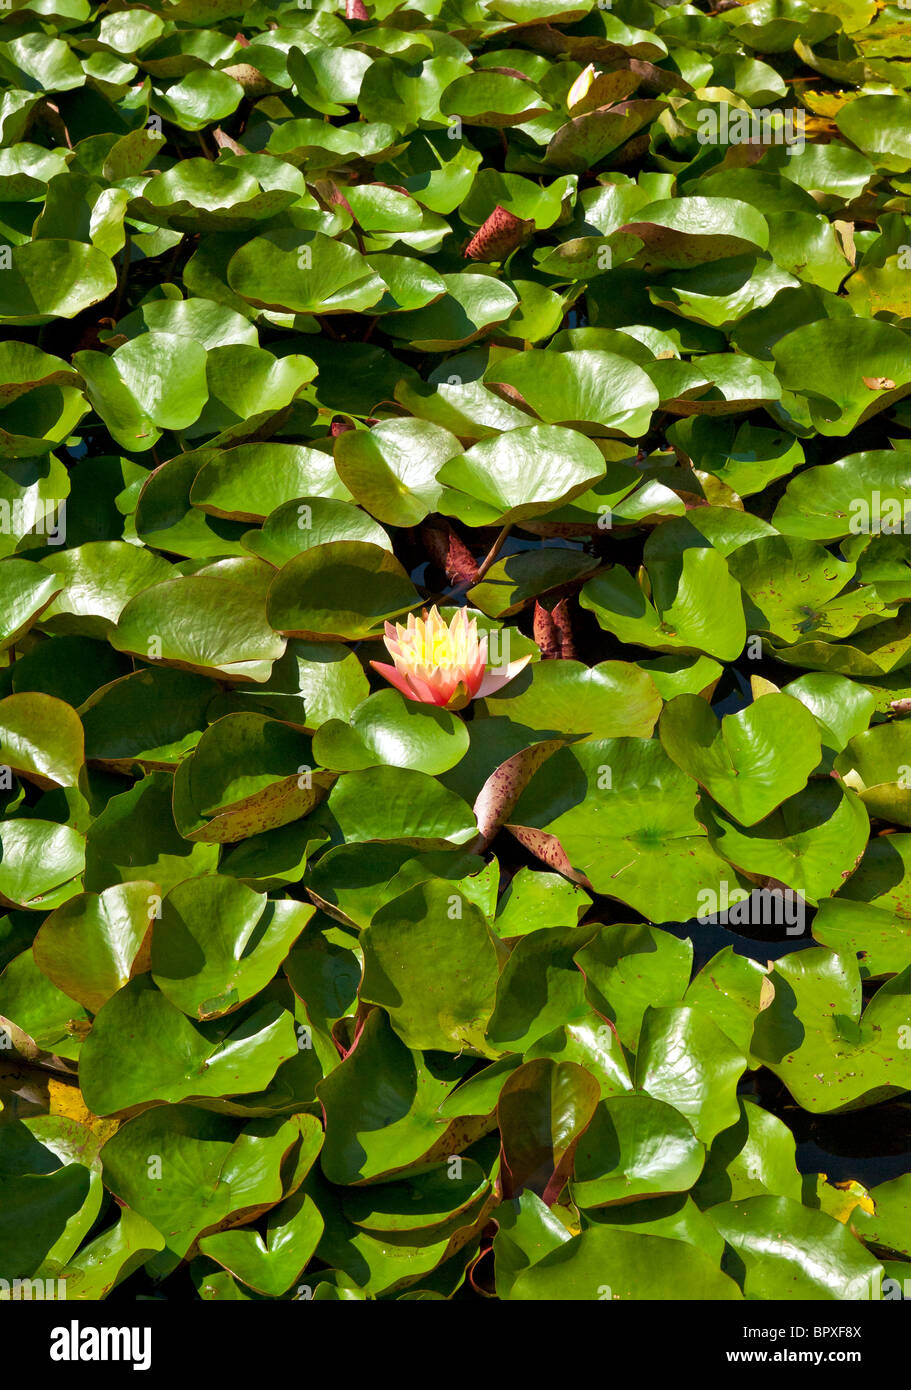 Flowering water lilly in a water garden. - Stock Image